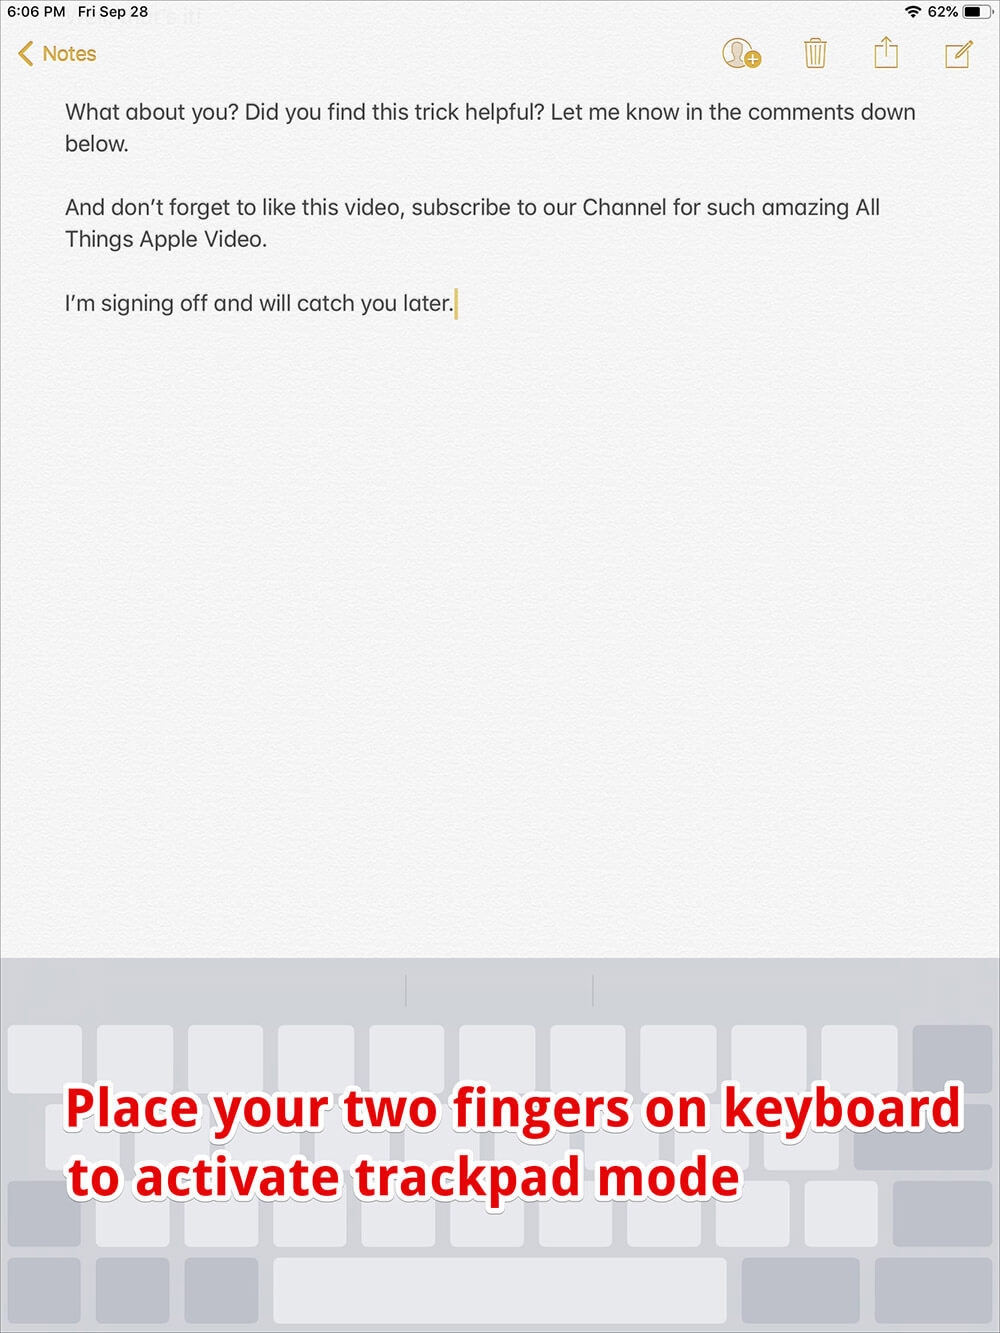 Turn the iPad Keyboard into a Trackpad to Select the Text